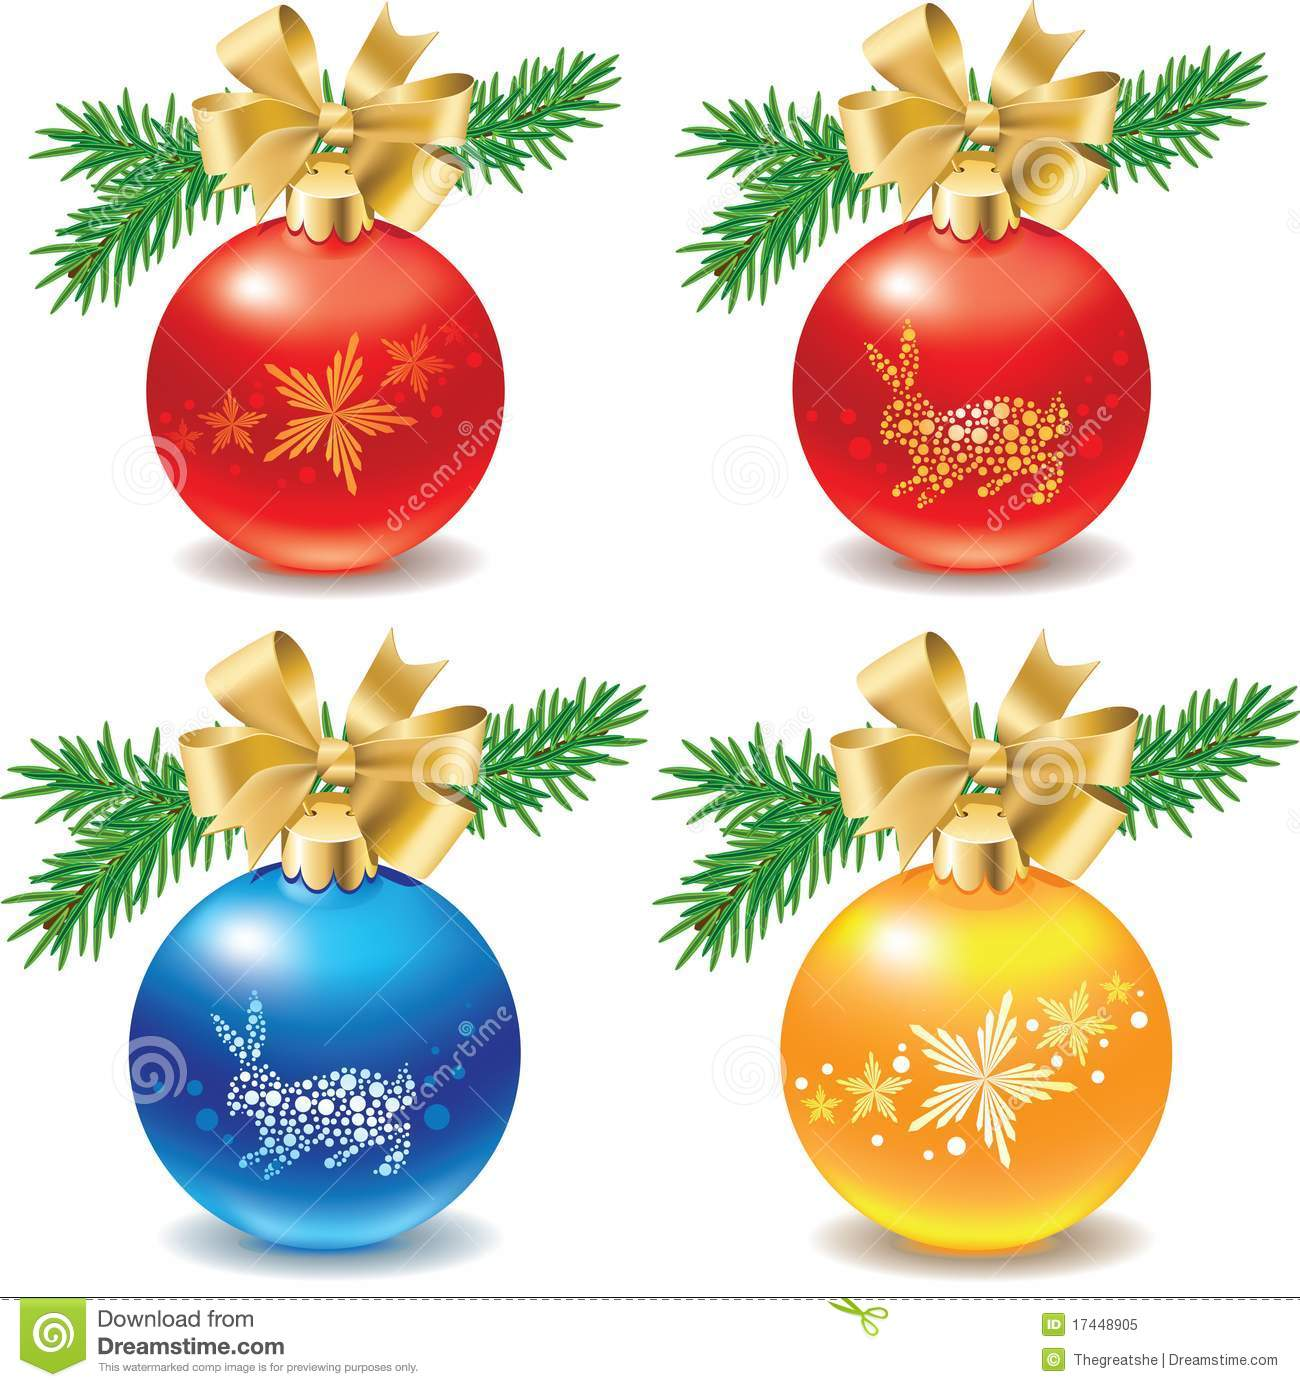 Icon Set Of Christmas Balls Decorations Stock Vector Illustration